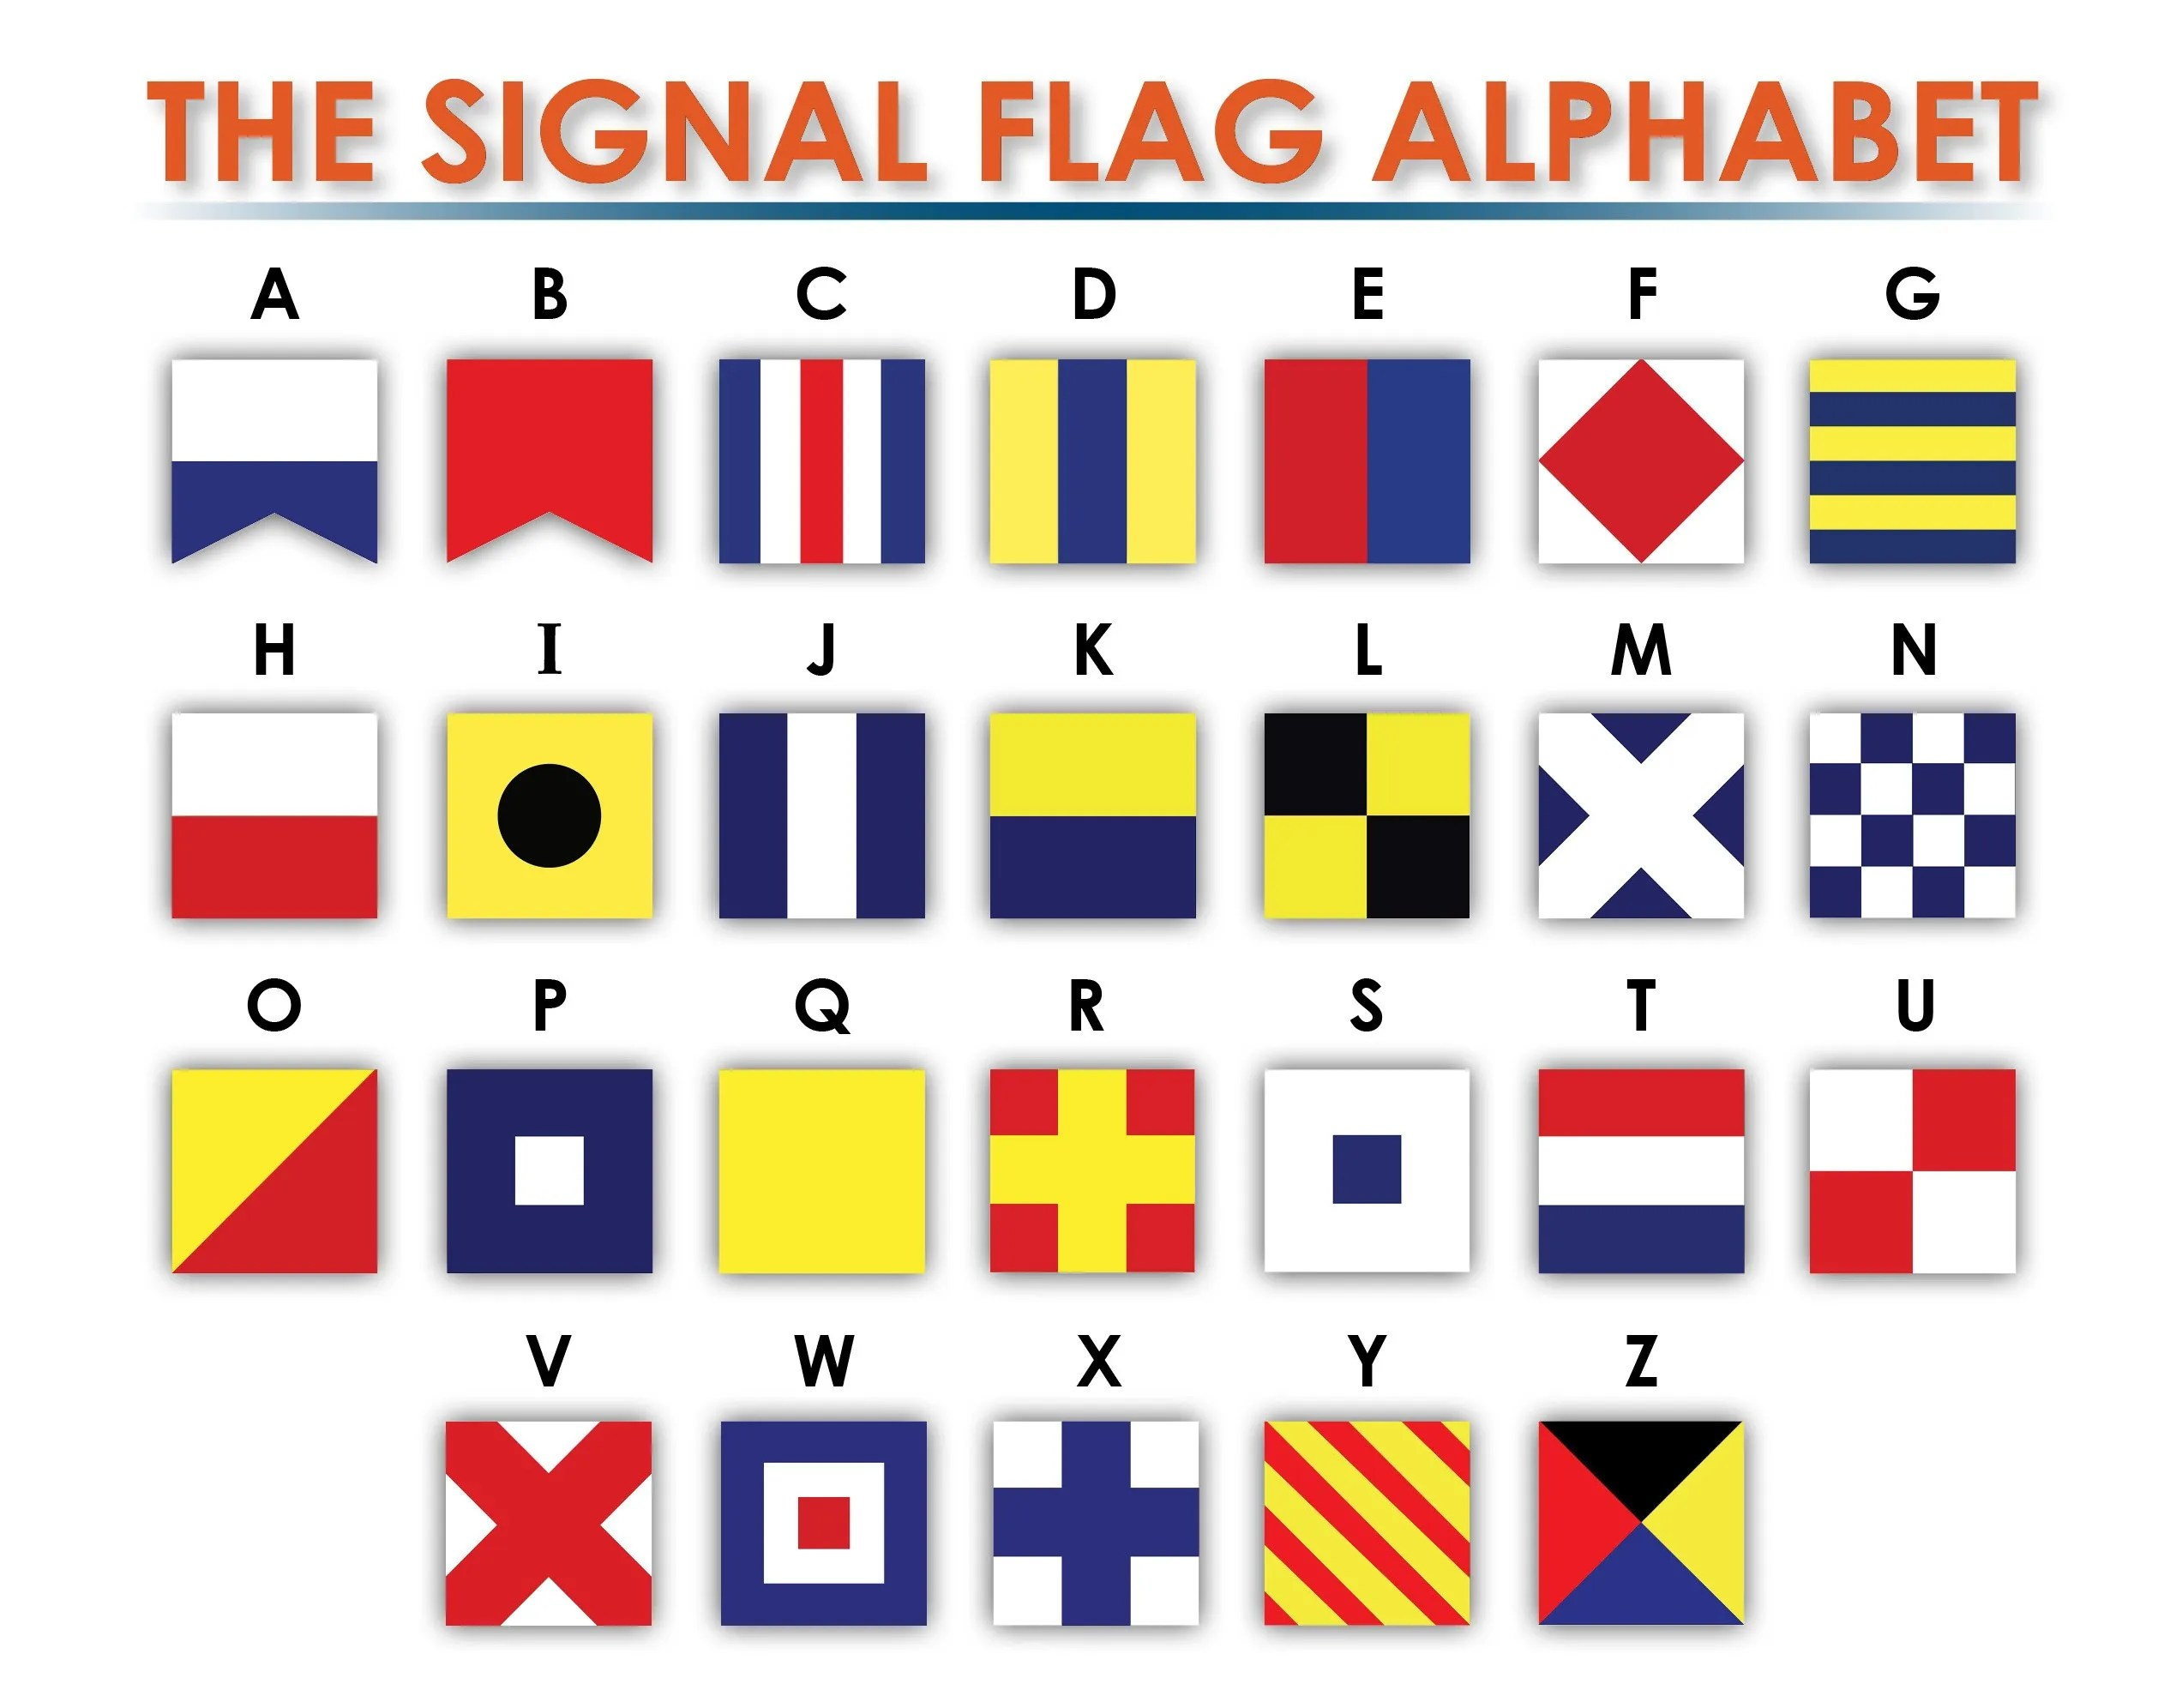 The signal flag alphabet will help visitors decipher what the flags mean on the court's mural.